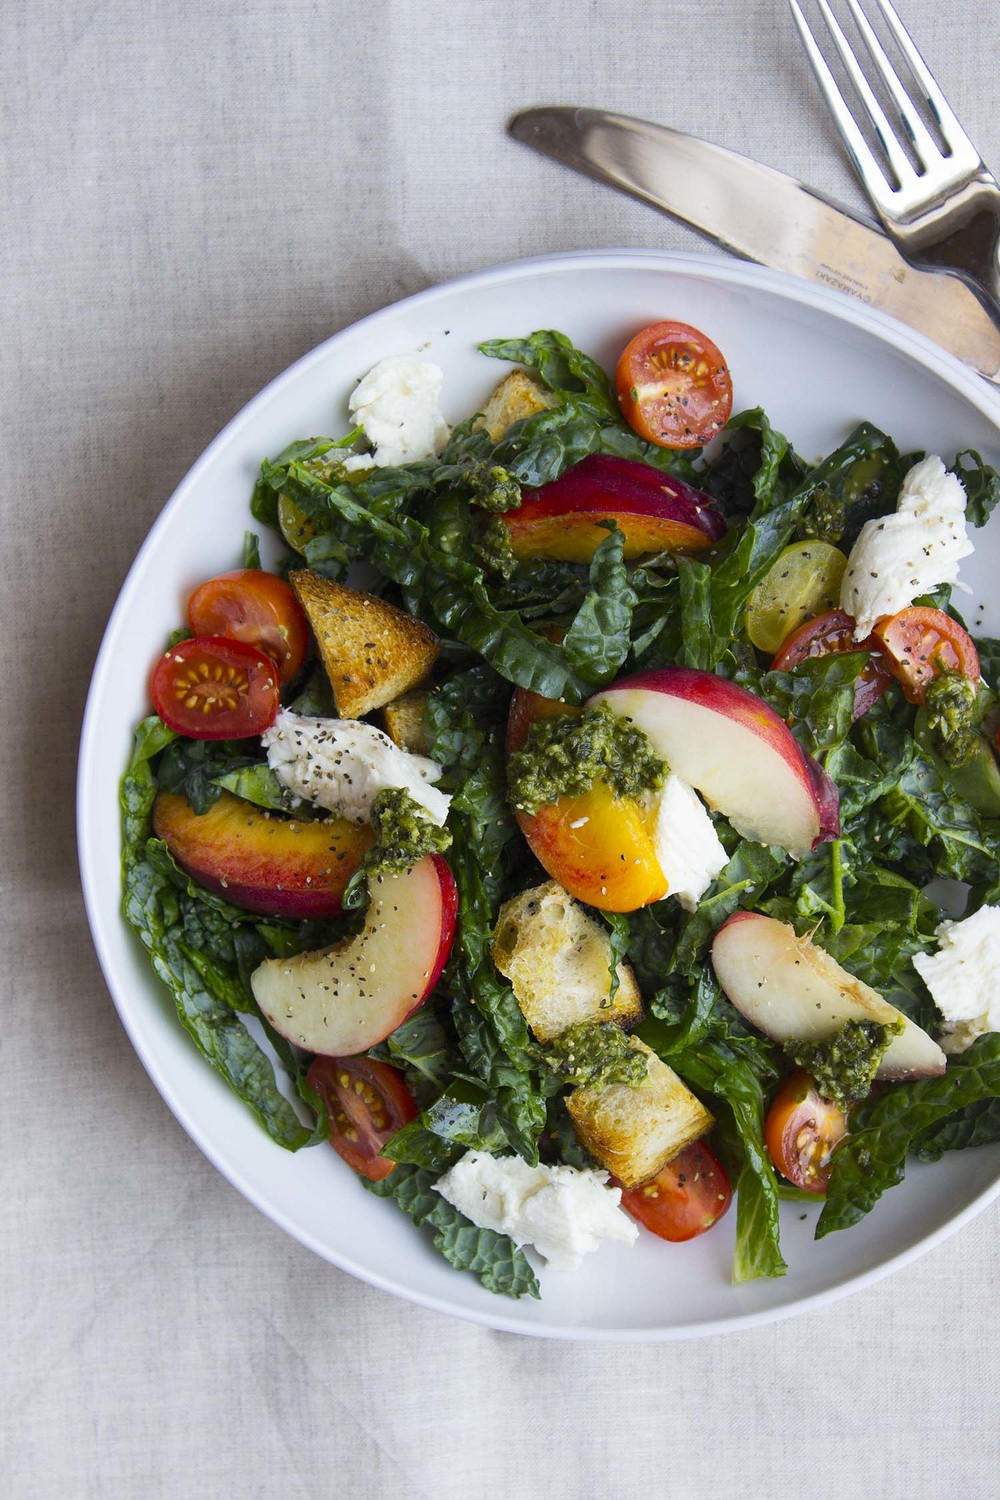 Summer Panzanella Salad with Pesto Vinaigrette  | Image:  Laura Messersmith